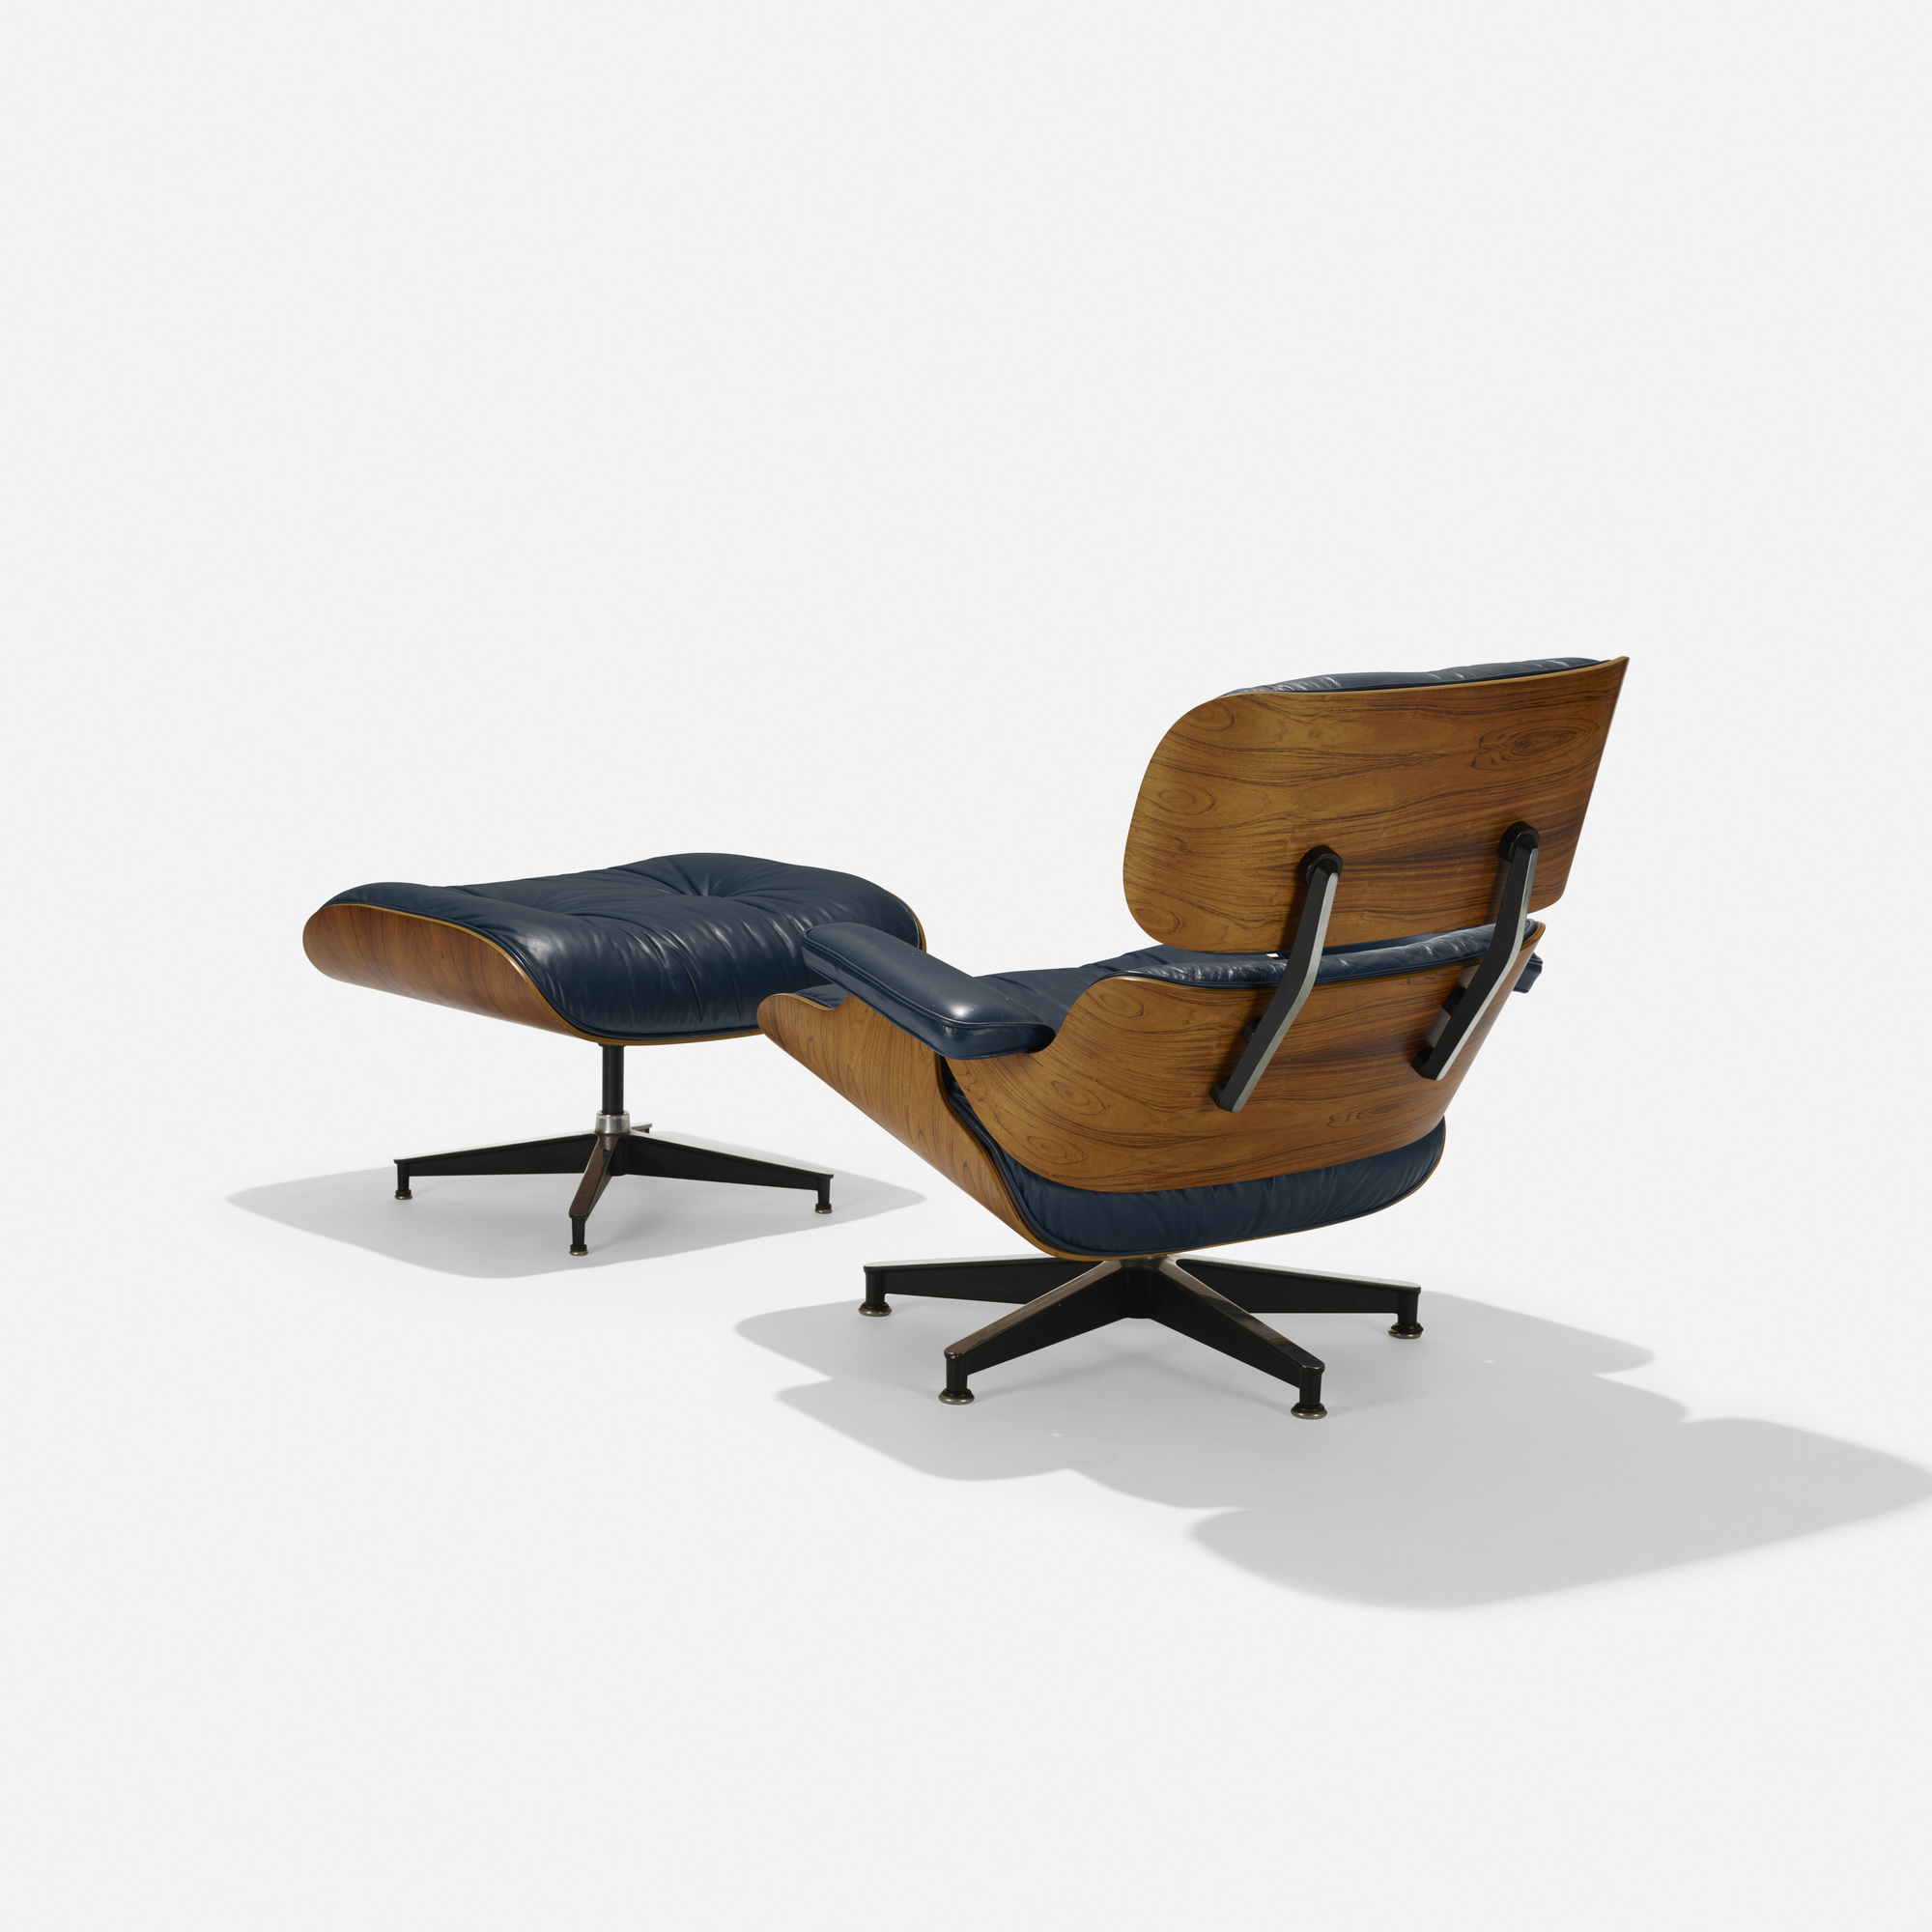 103: Charles and Ray Eames / special-order 670 lounge chair and 671 ottoman (2 of 4)